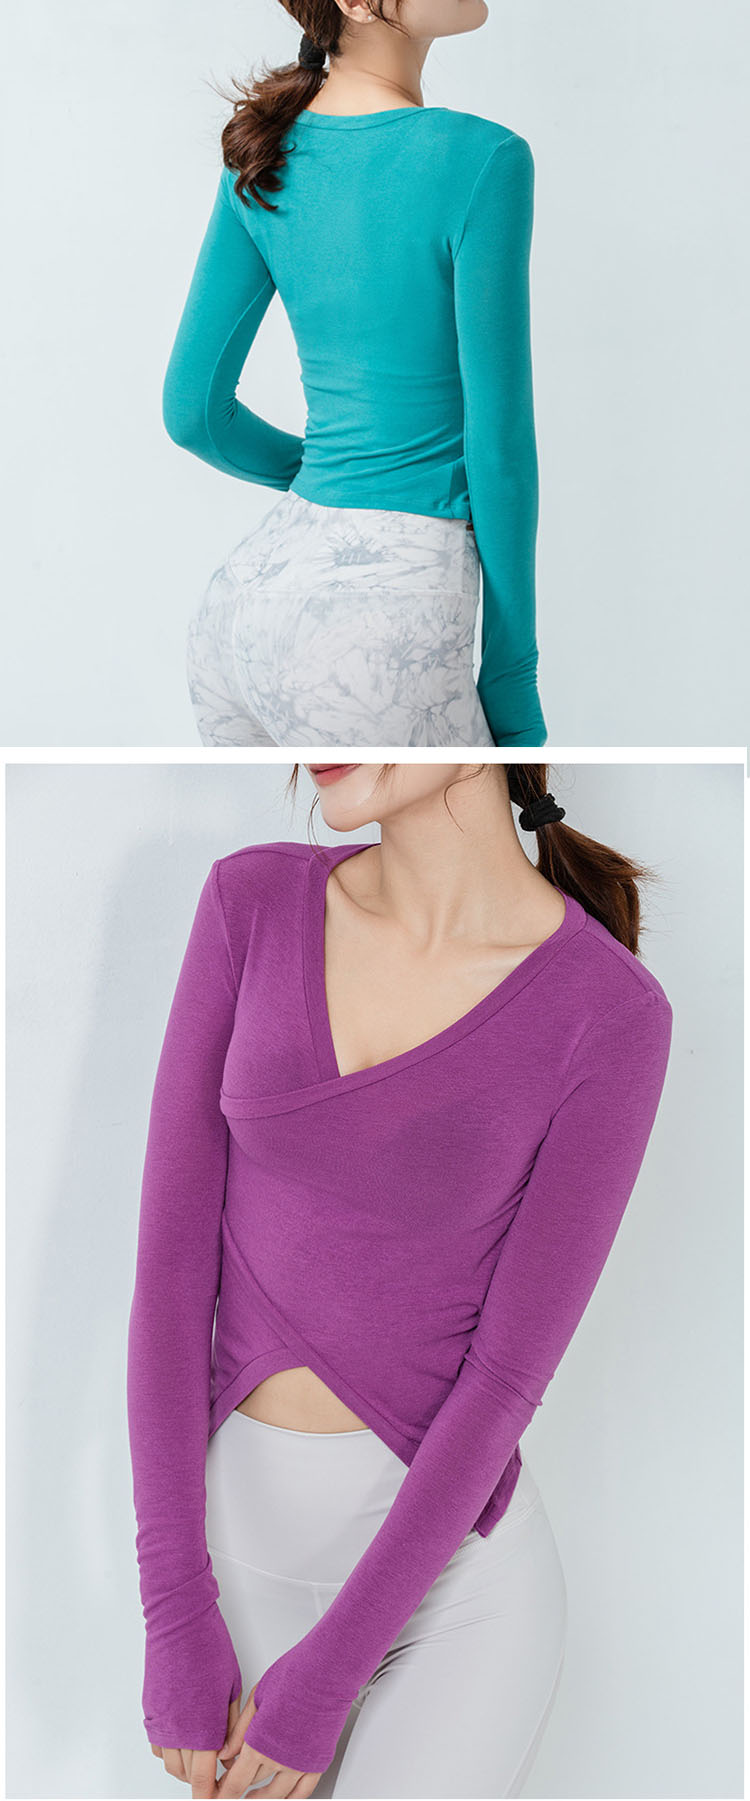 Use high-elastic fabric, skin-friendly and breathable. Fits to the body and makes exercise more comfortable.